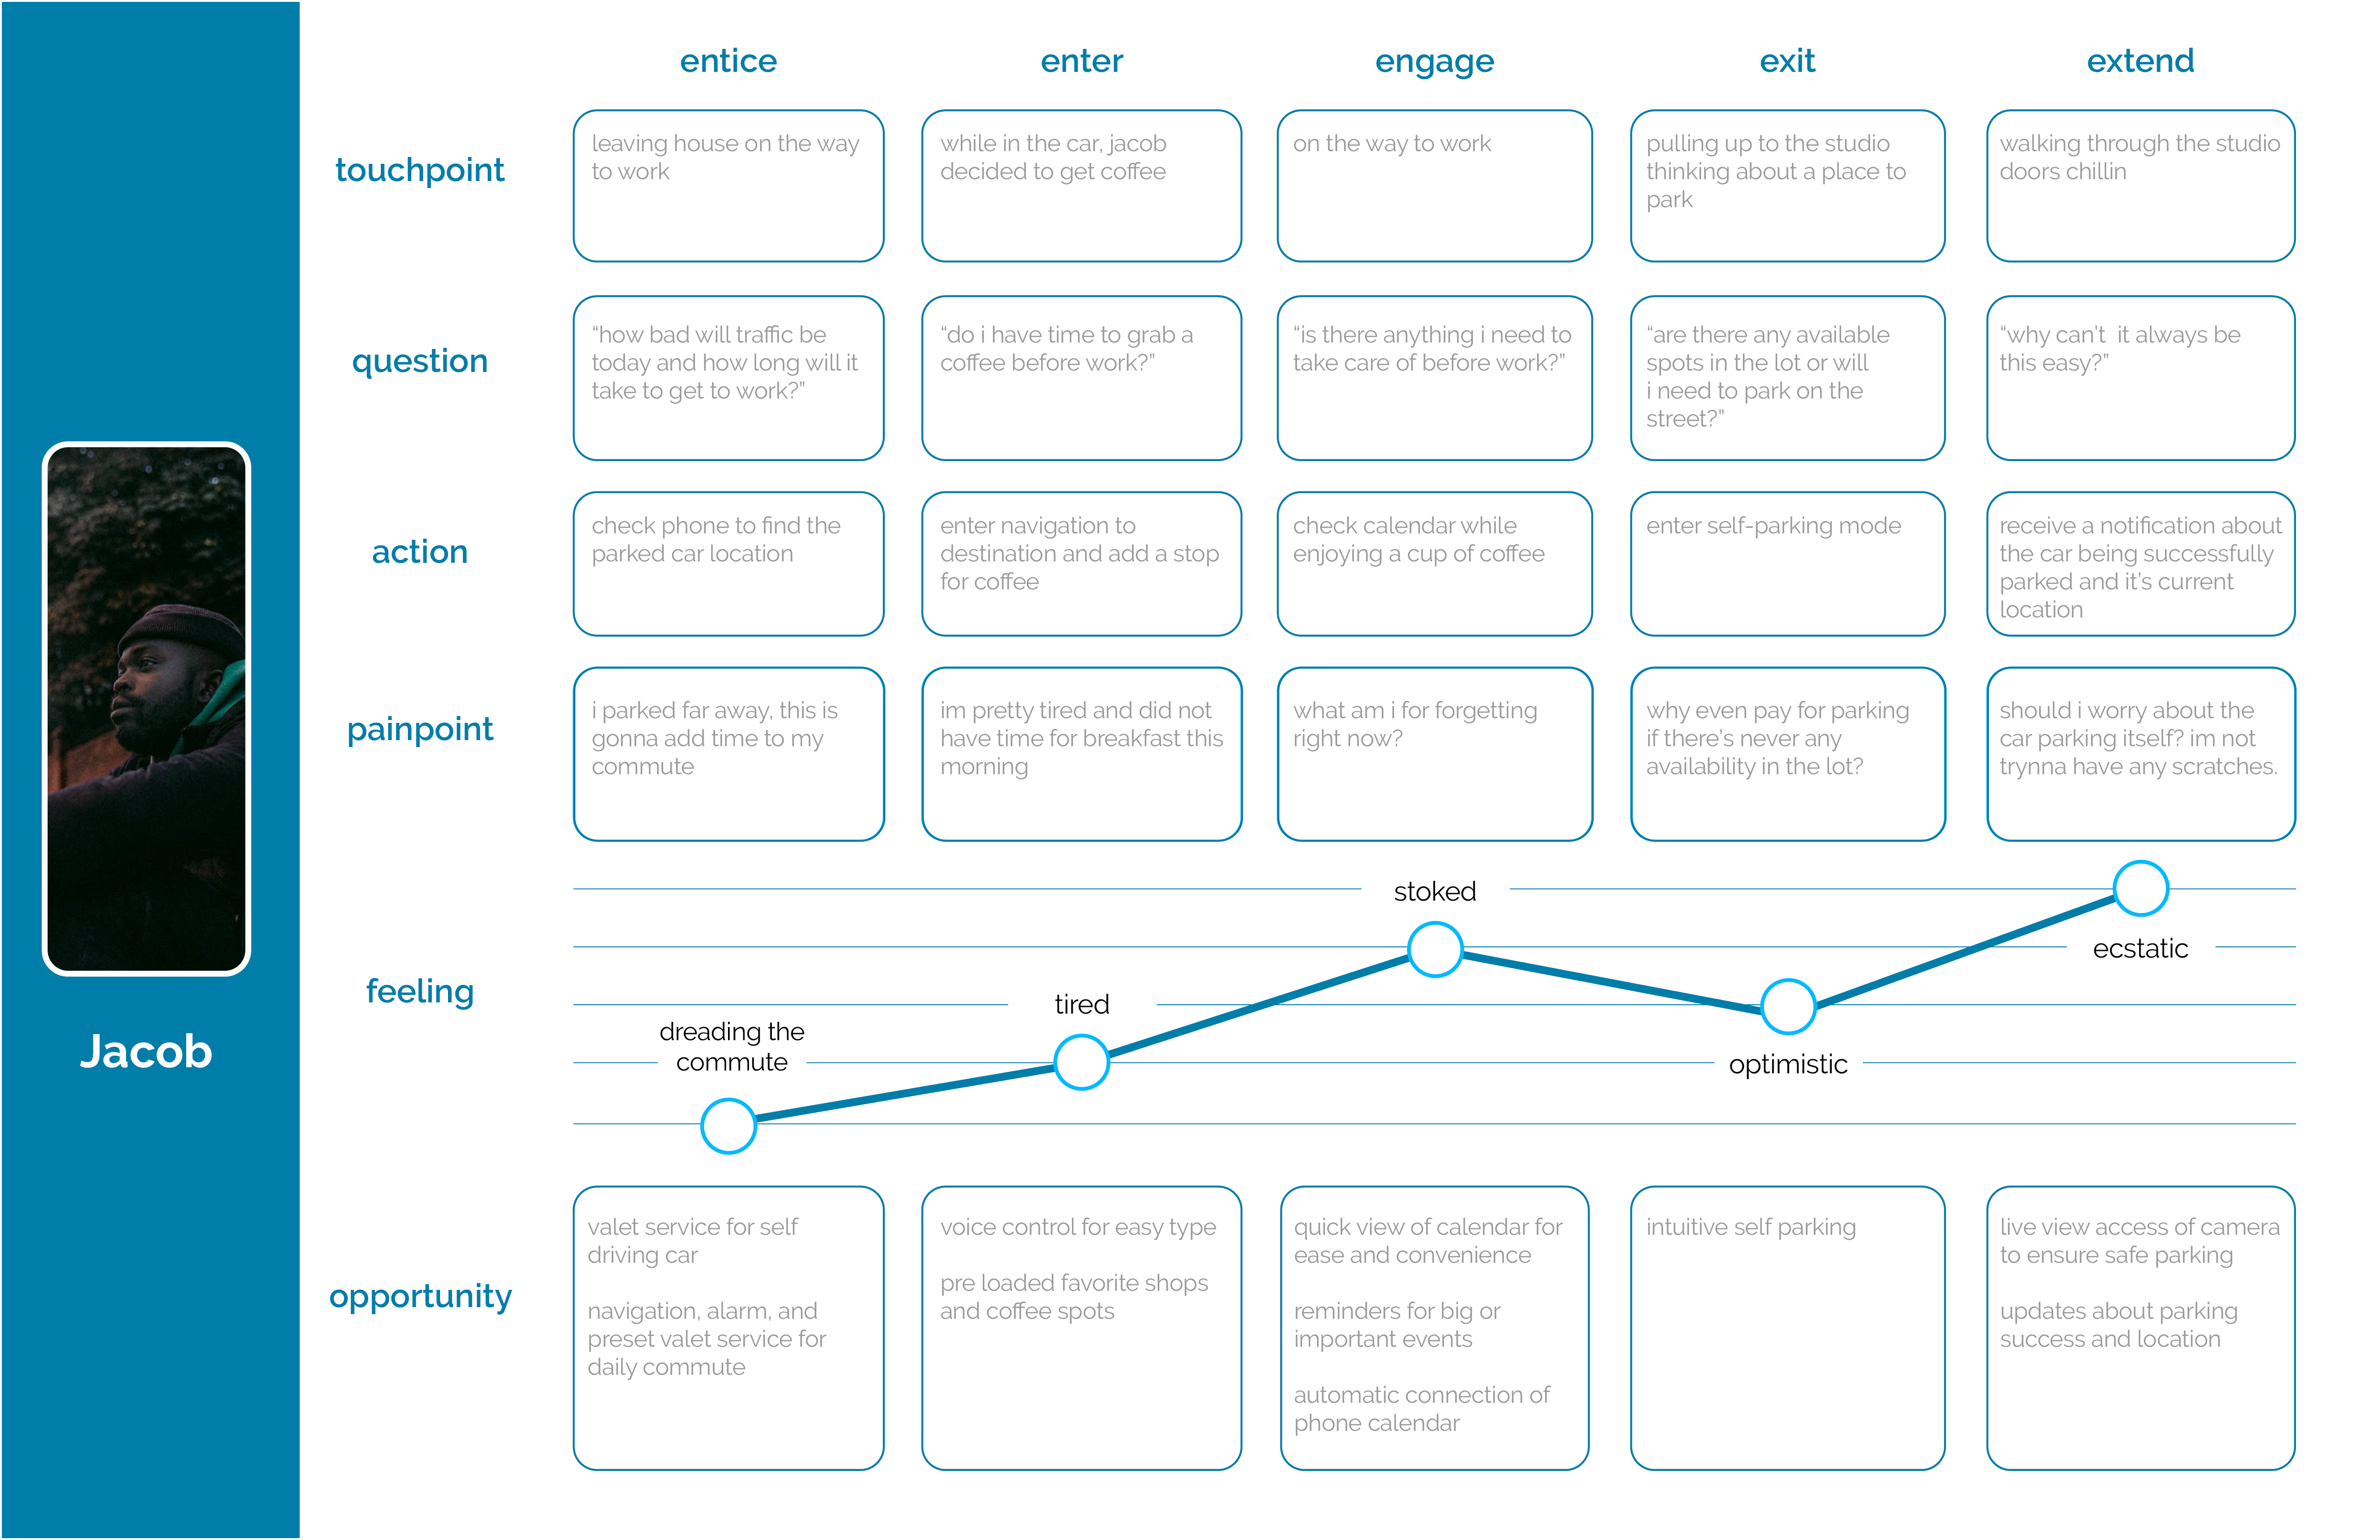 user journey map for Jacob